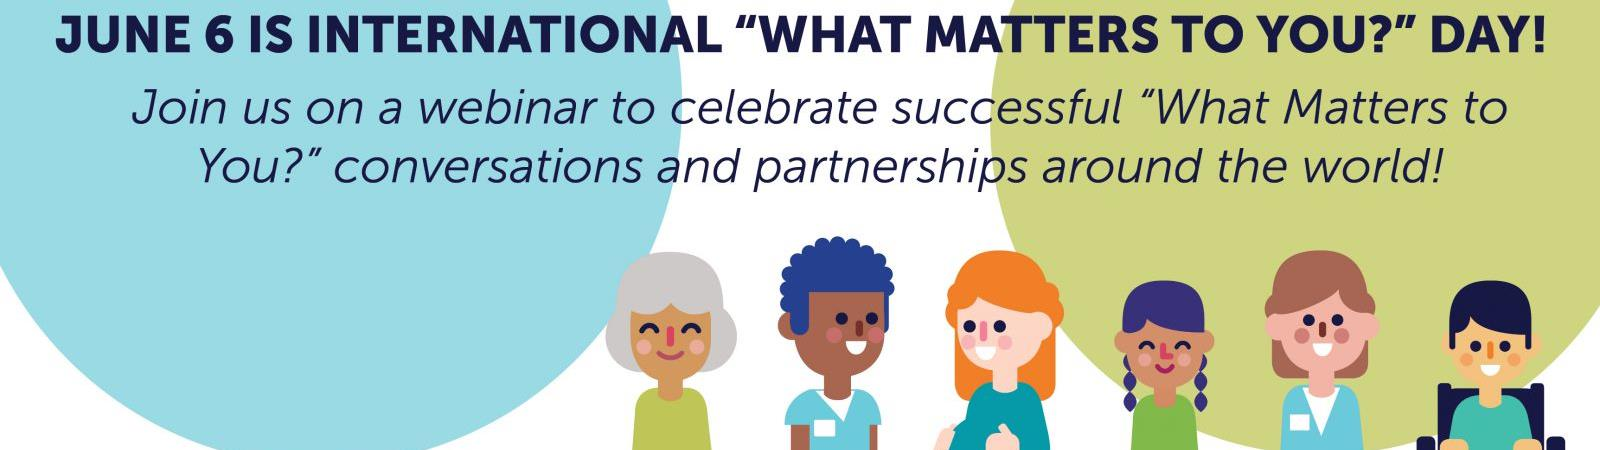 "International ""What Matters to You?"" Day Webinar 2019"